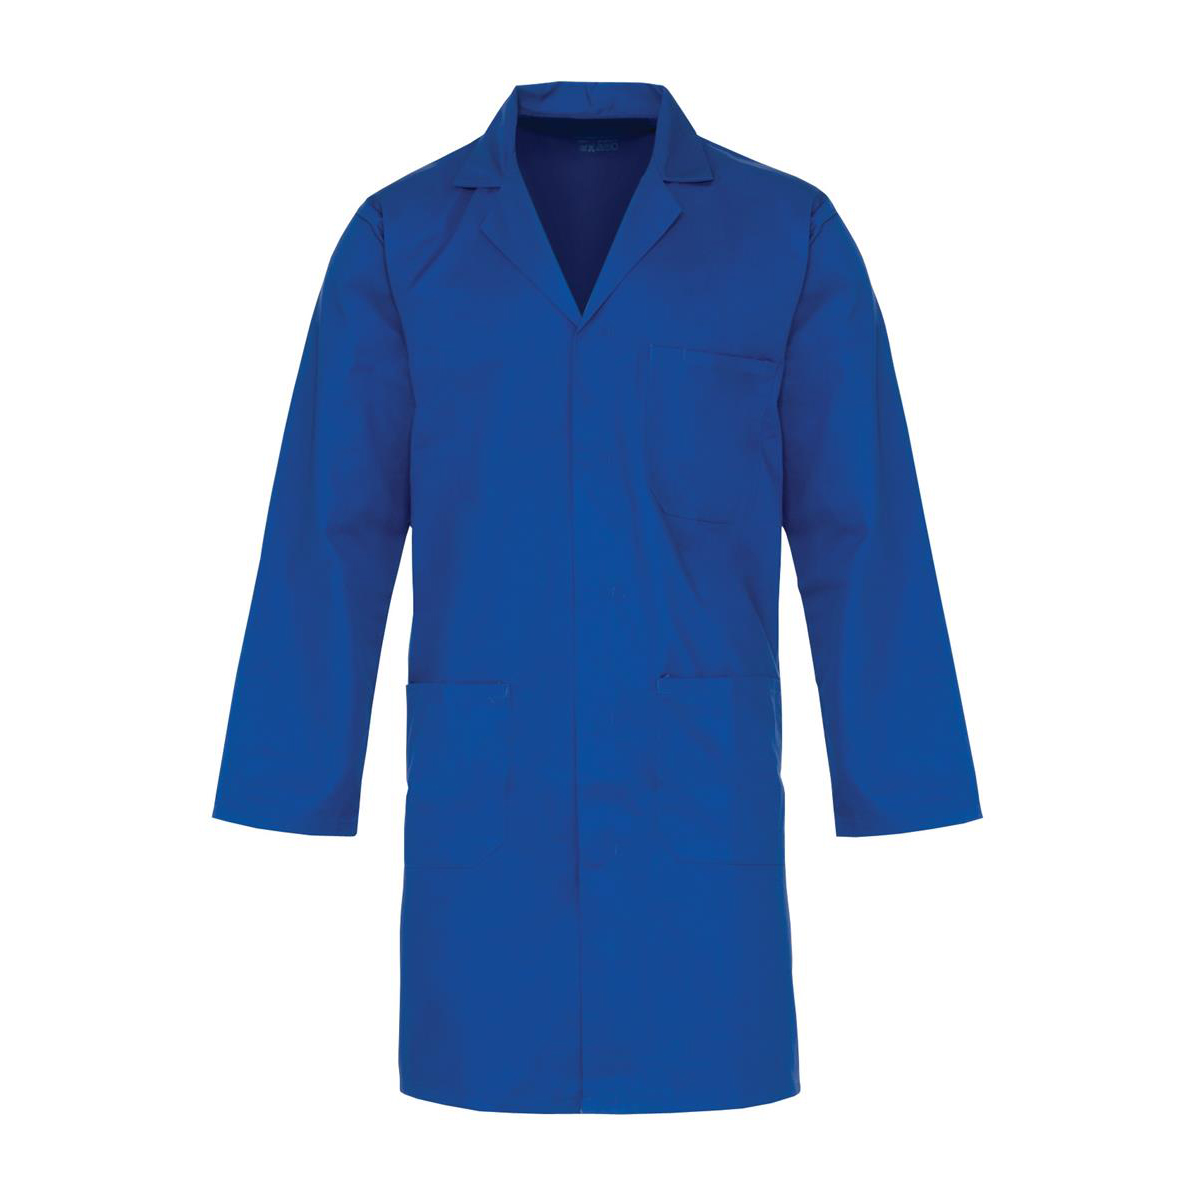 Supertouch Lab Coat Polycotton with 3 Pockets Large Navy Ref 57013 *Approx 3 Day Leadtime*